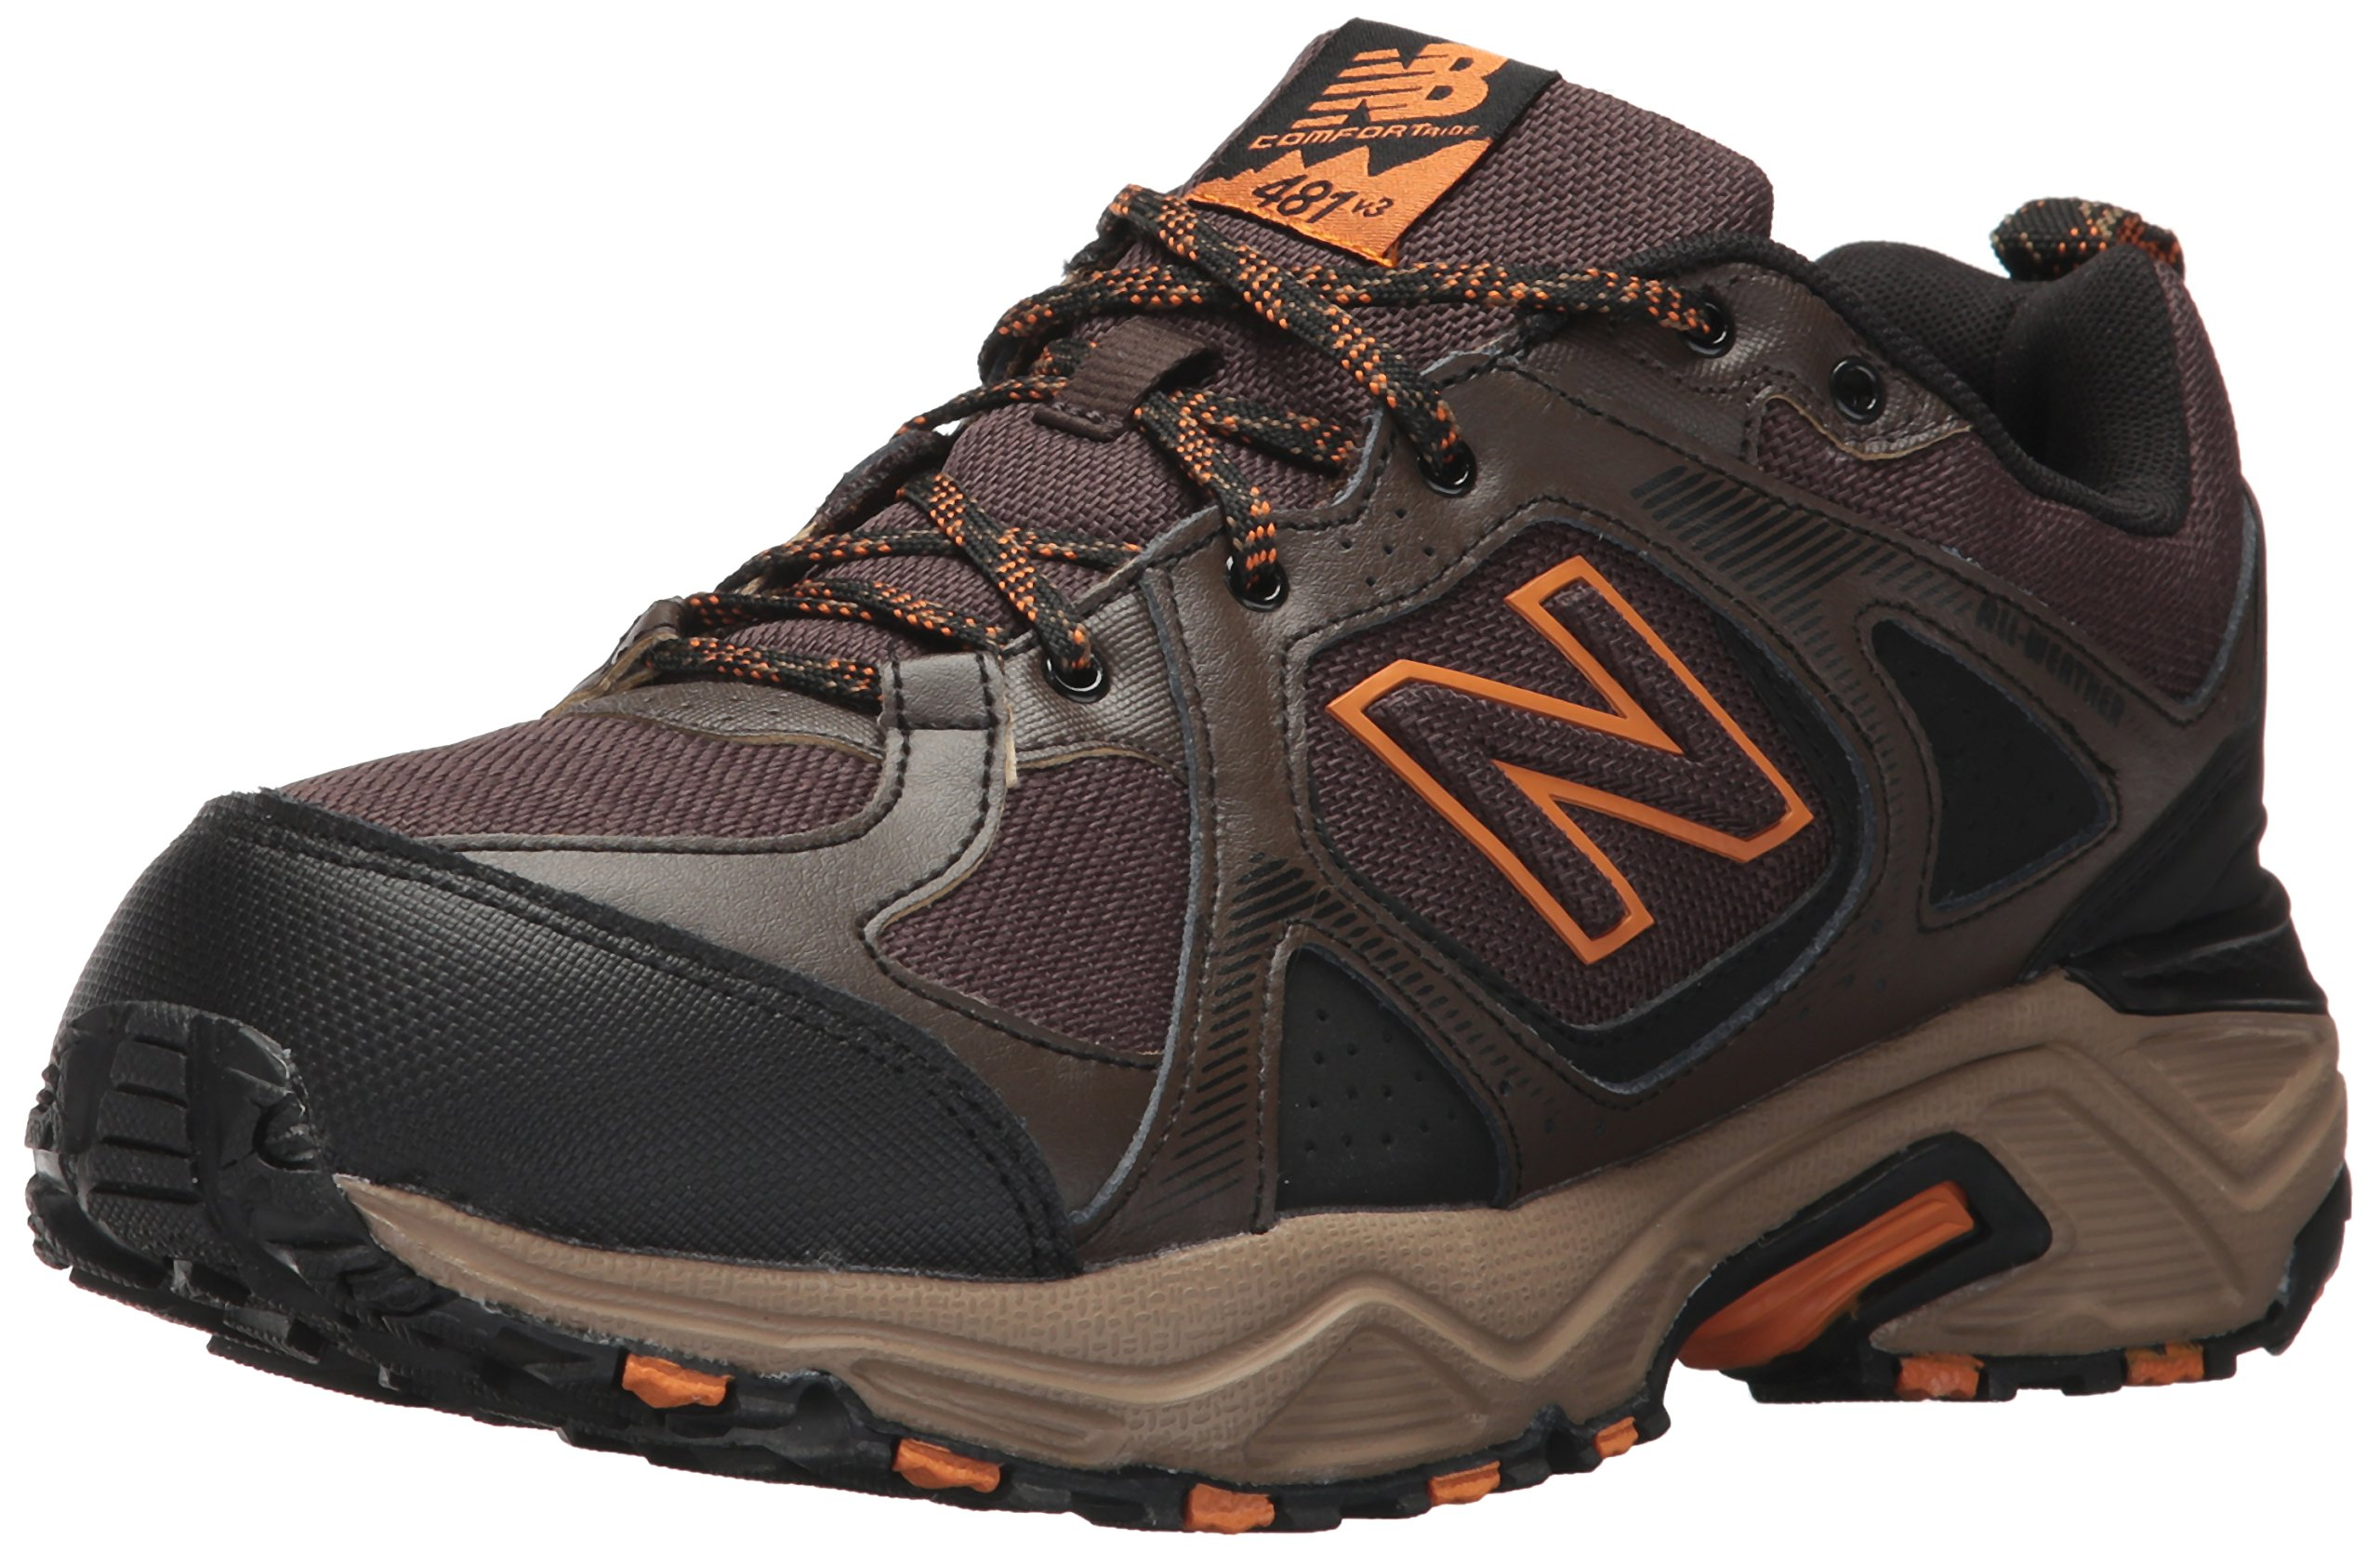 New Balance Men's 481V3 Water Resistant Cushioning Trail Running Shoe, Brown, 14 4E US by New Balance